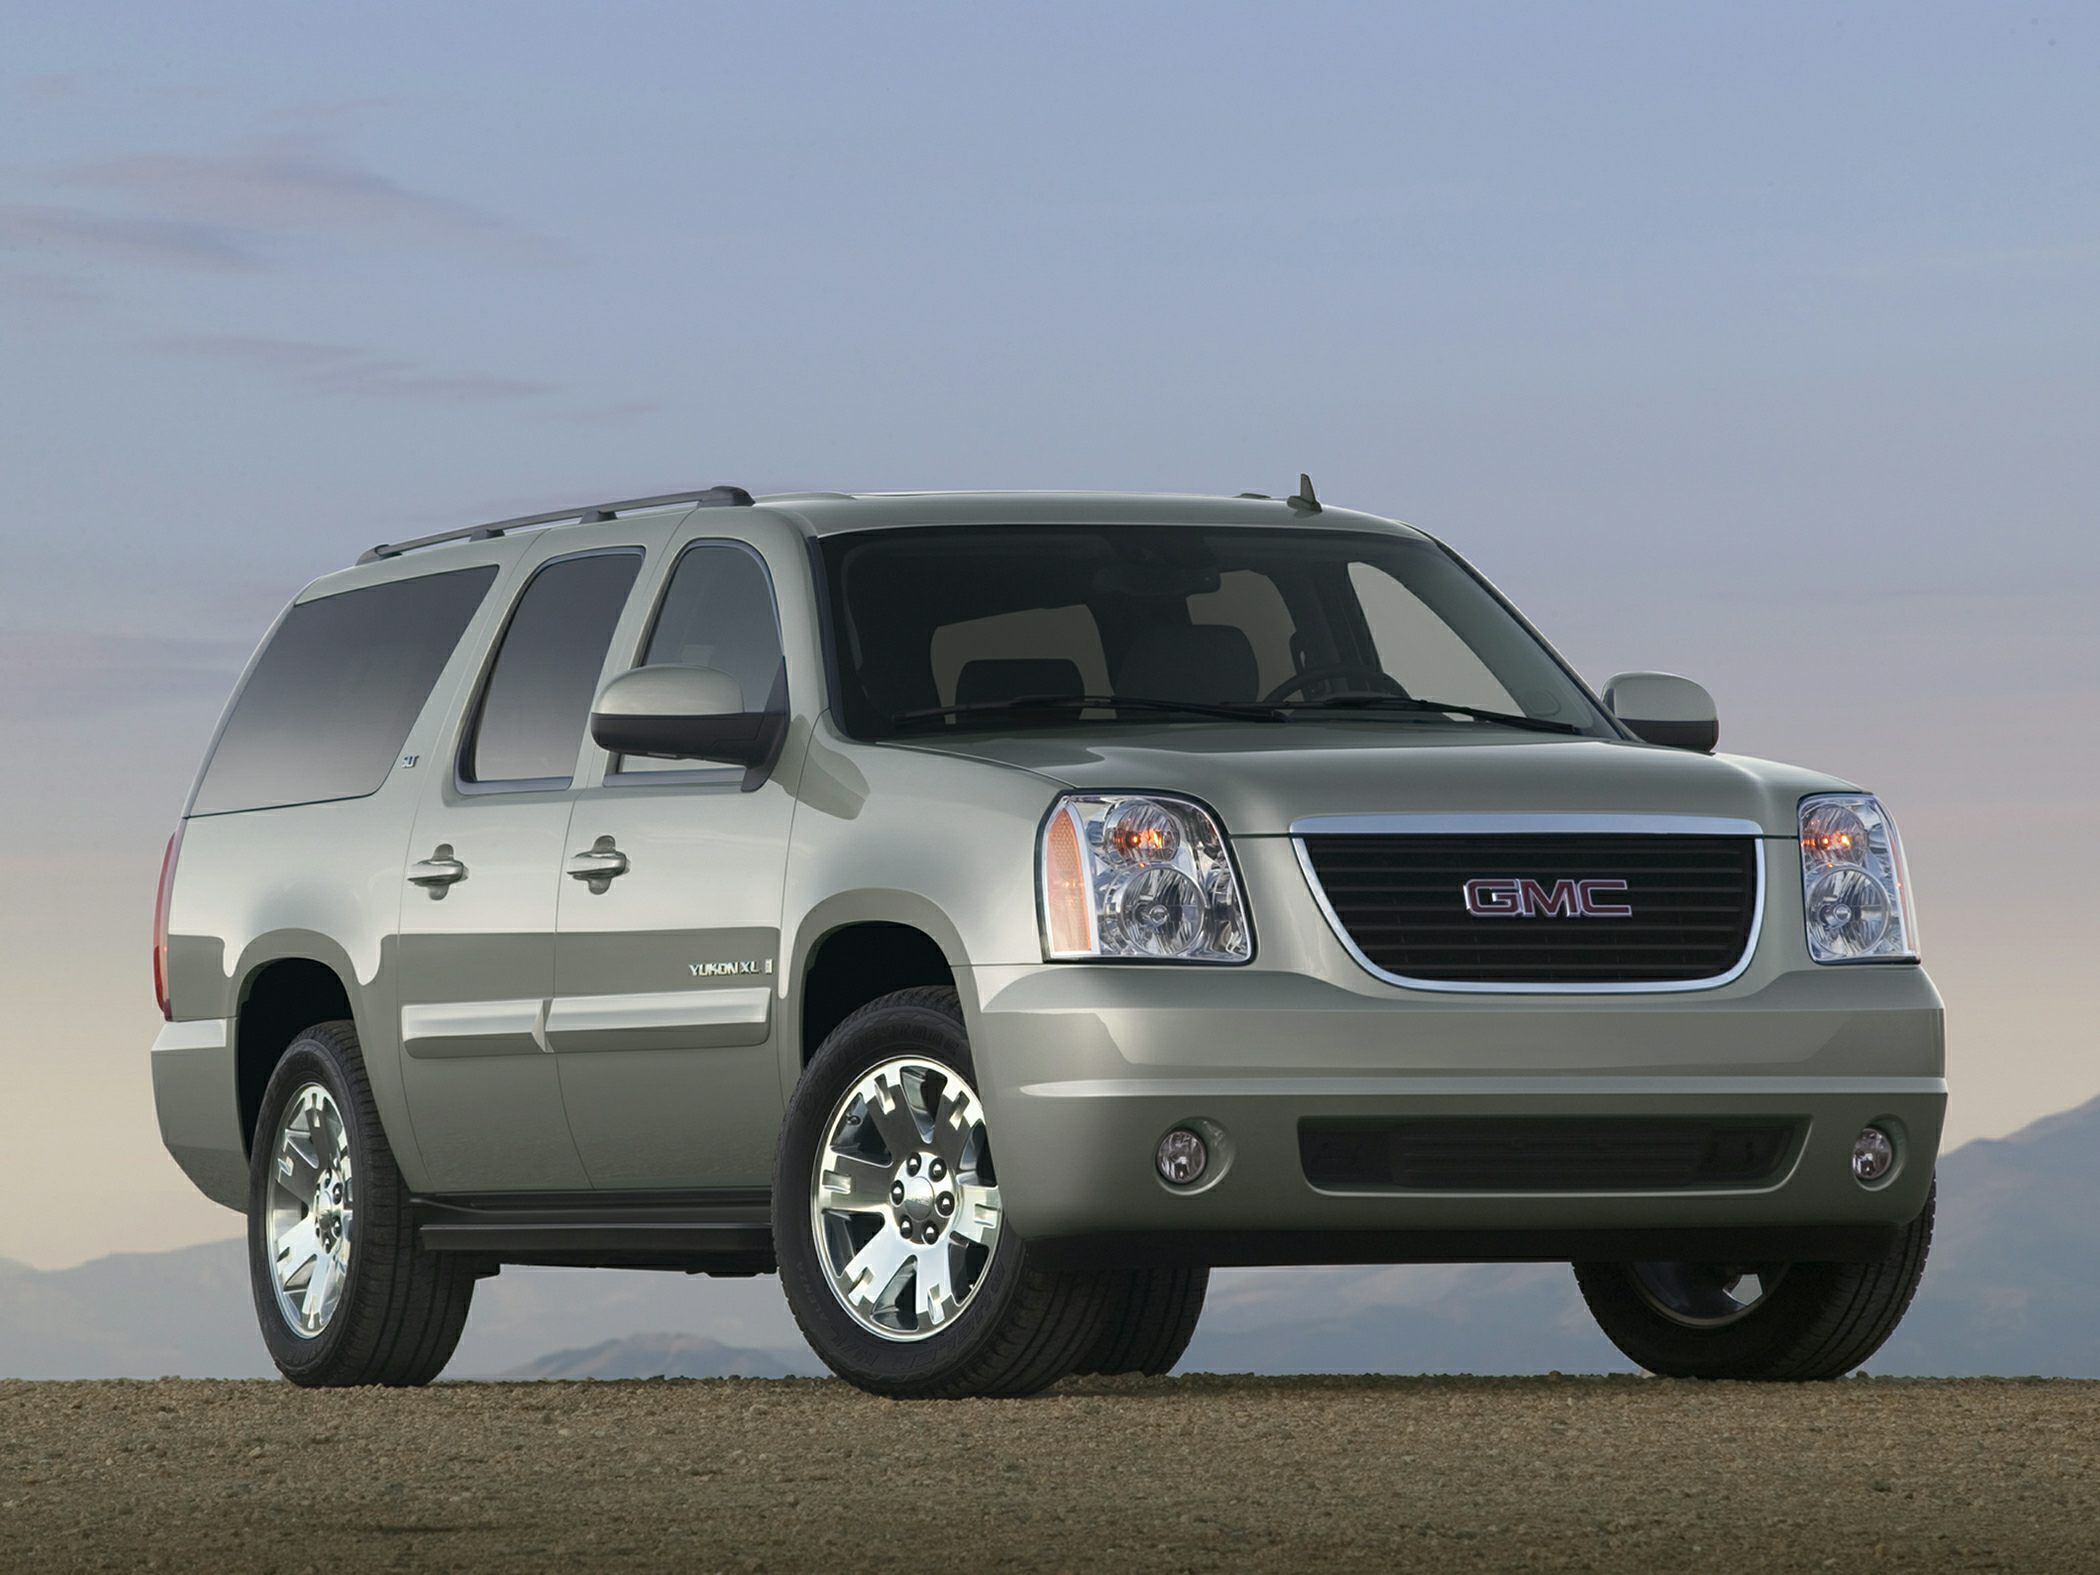 2013 Yukon Xl 2500 Mom Cars Upcoming Cars Chevrolet Car